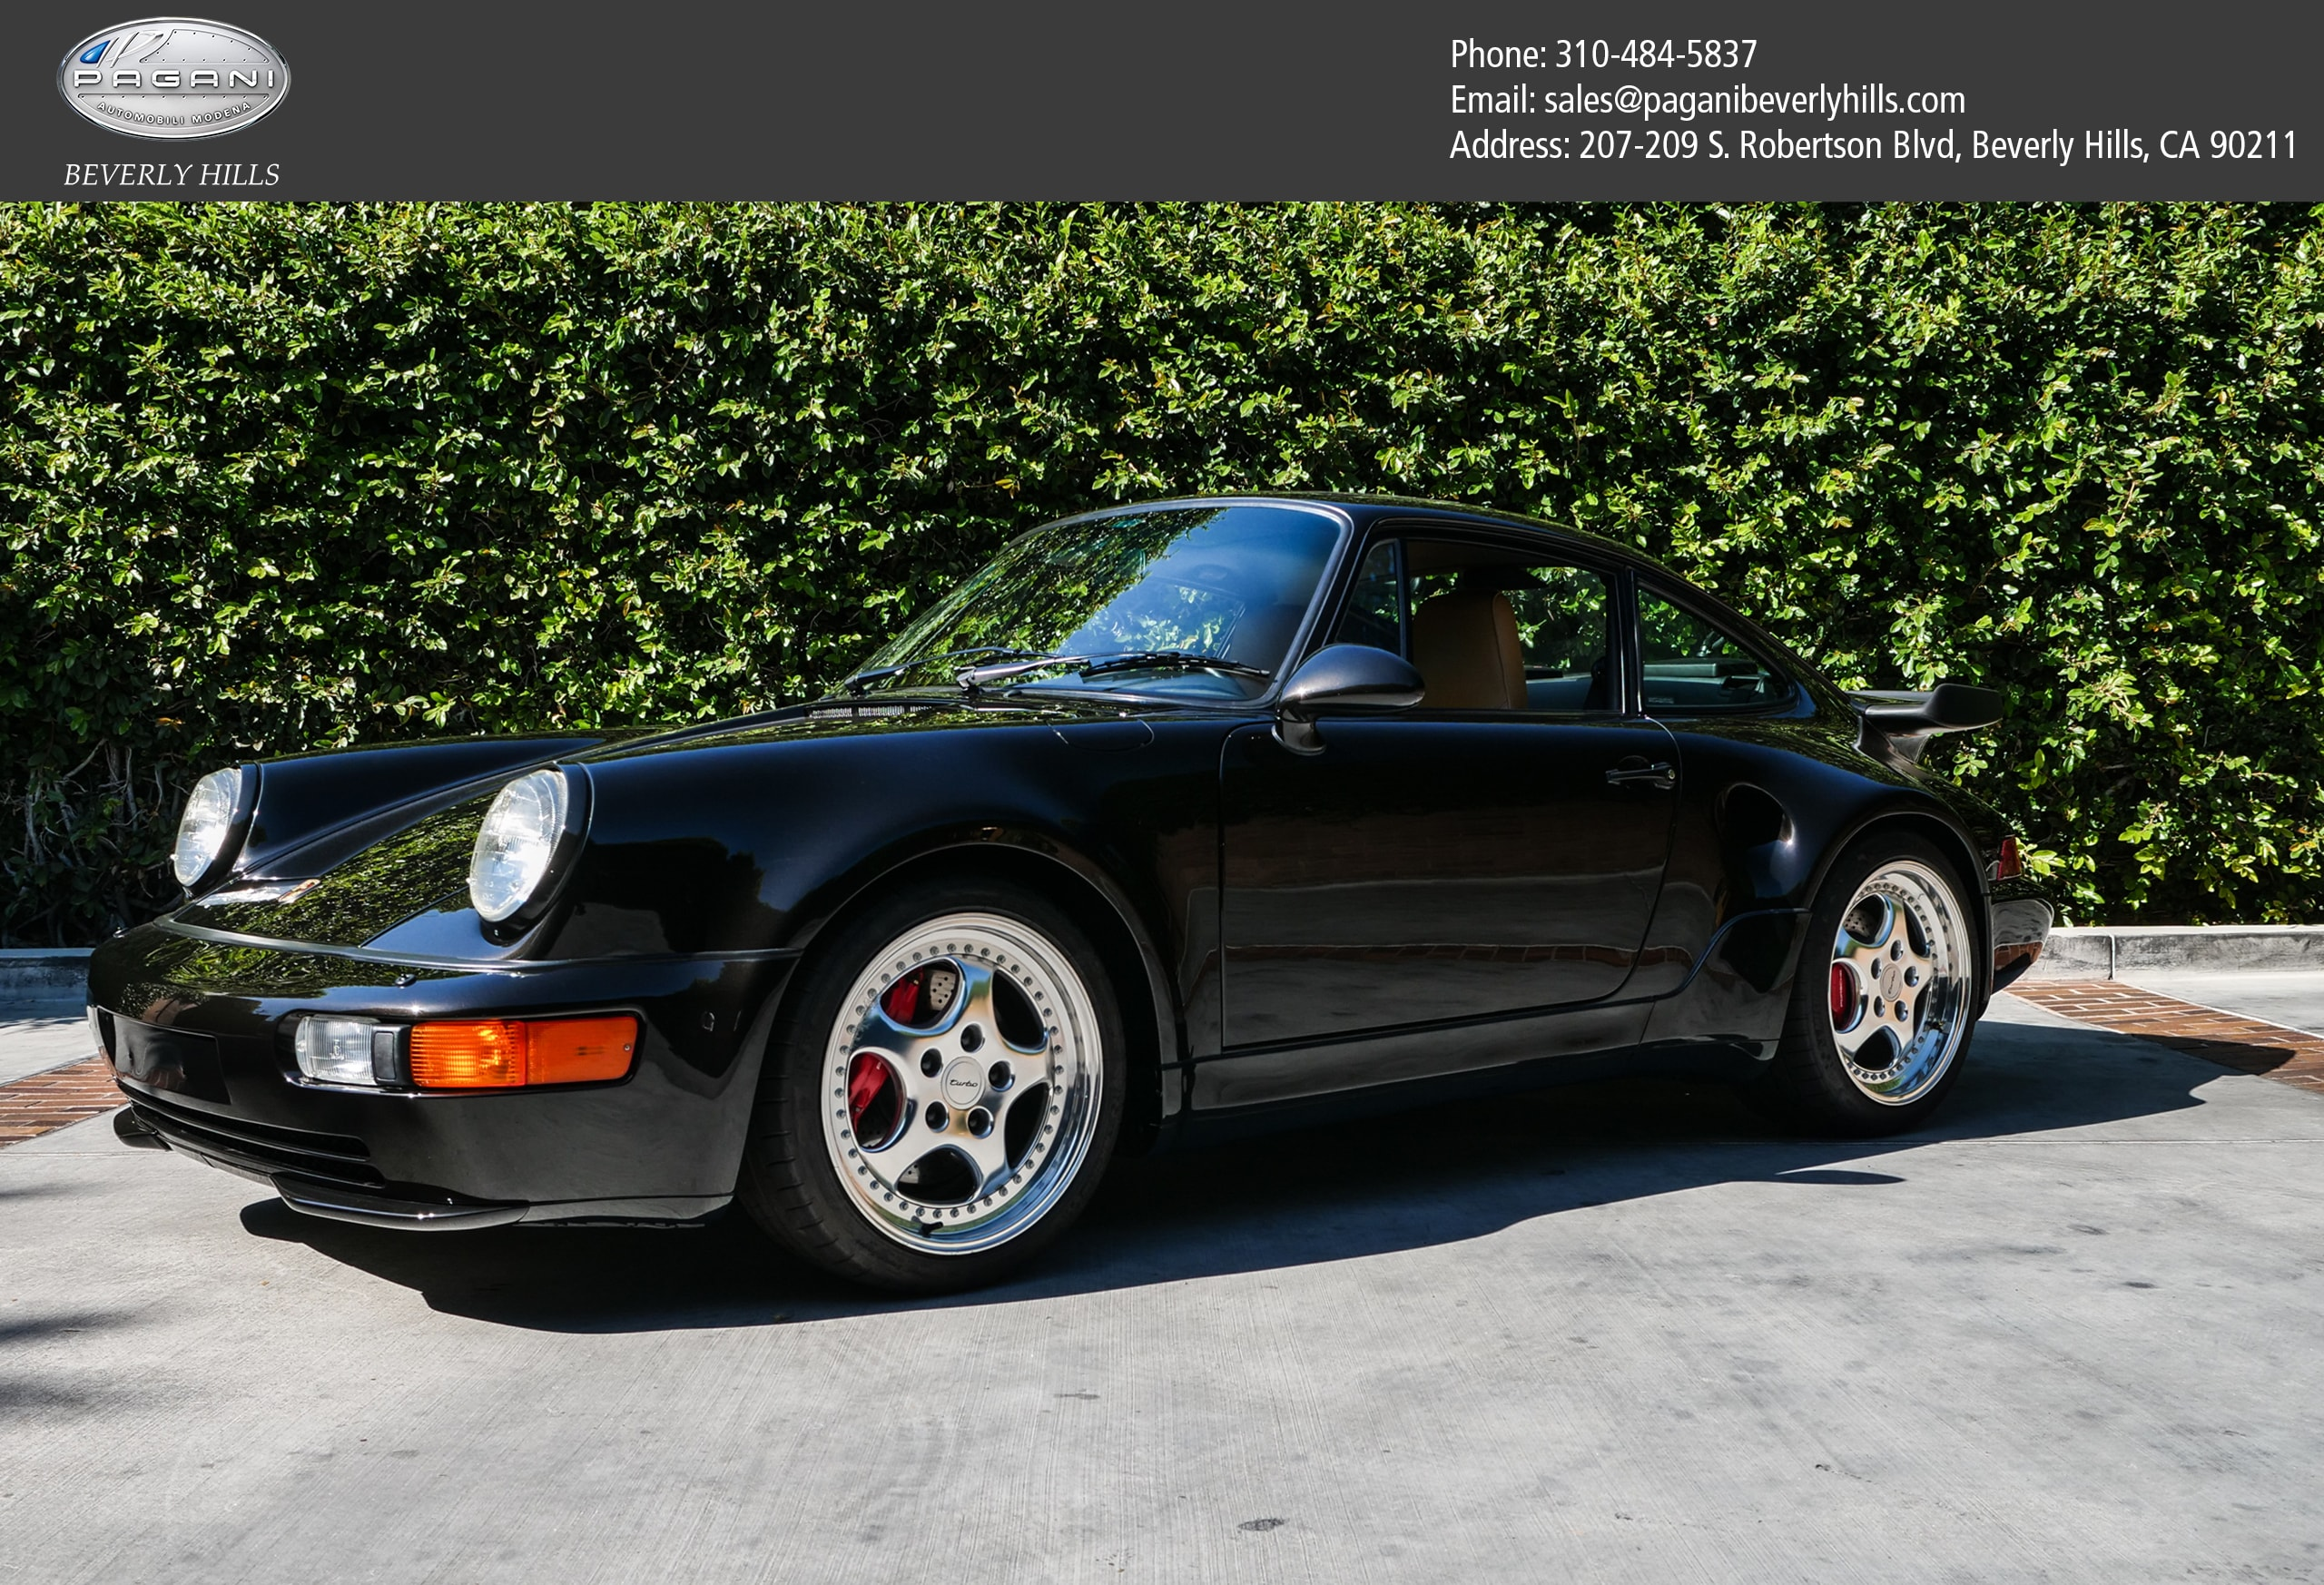 1994 Porsche 911 turbo S 2 door